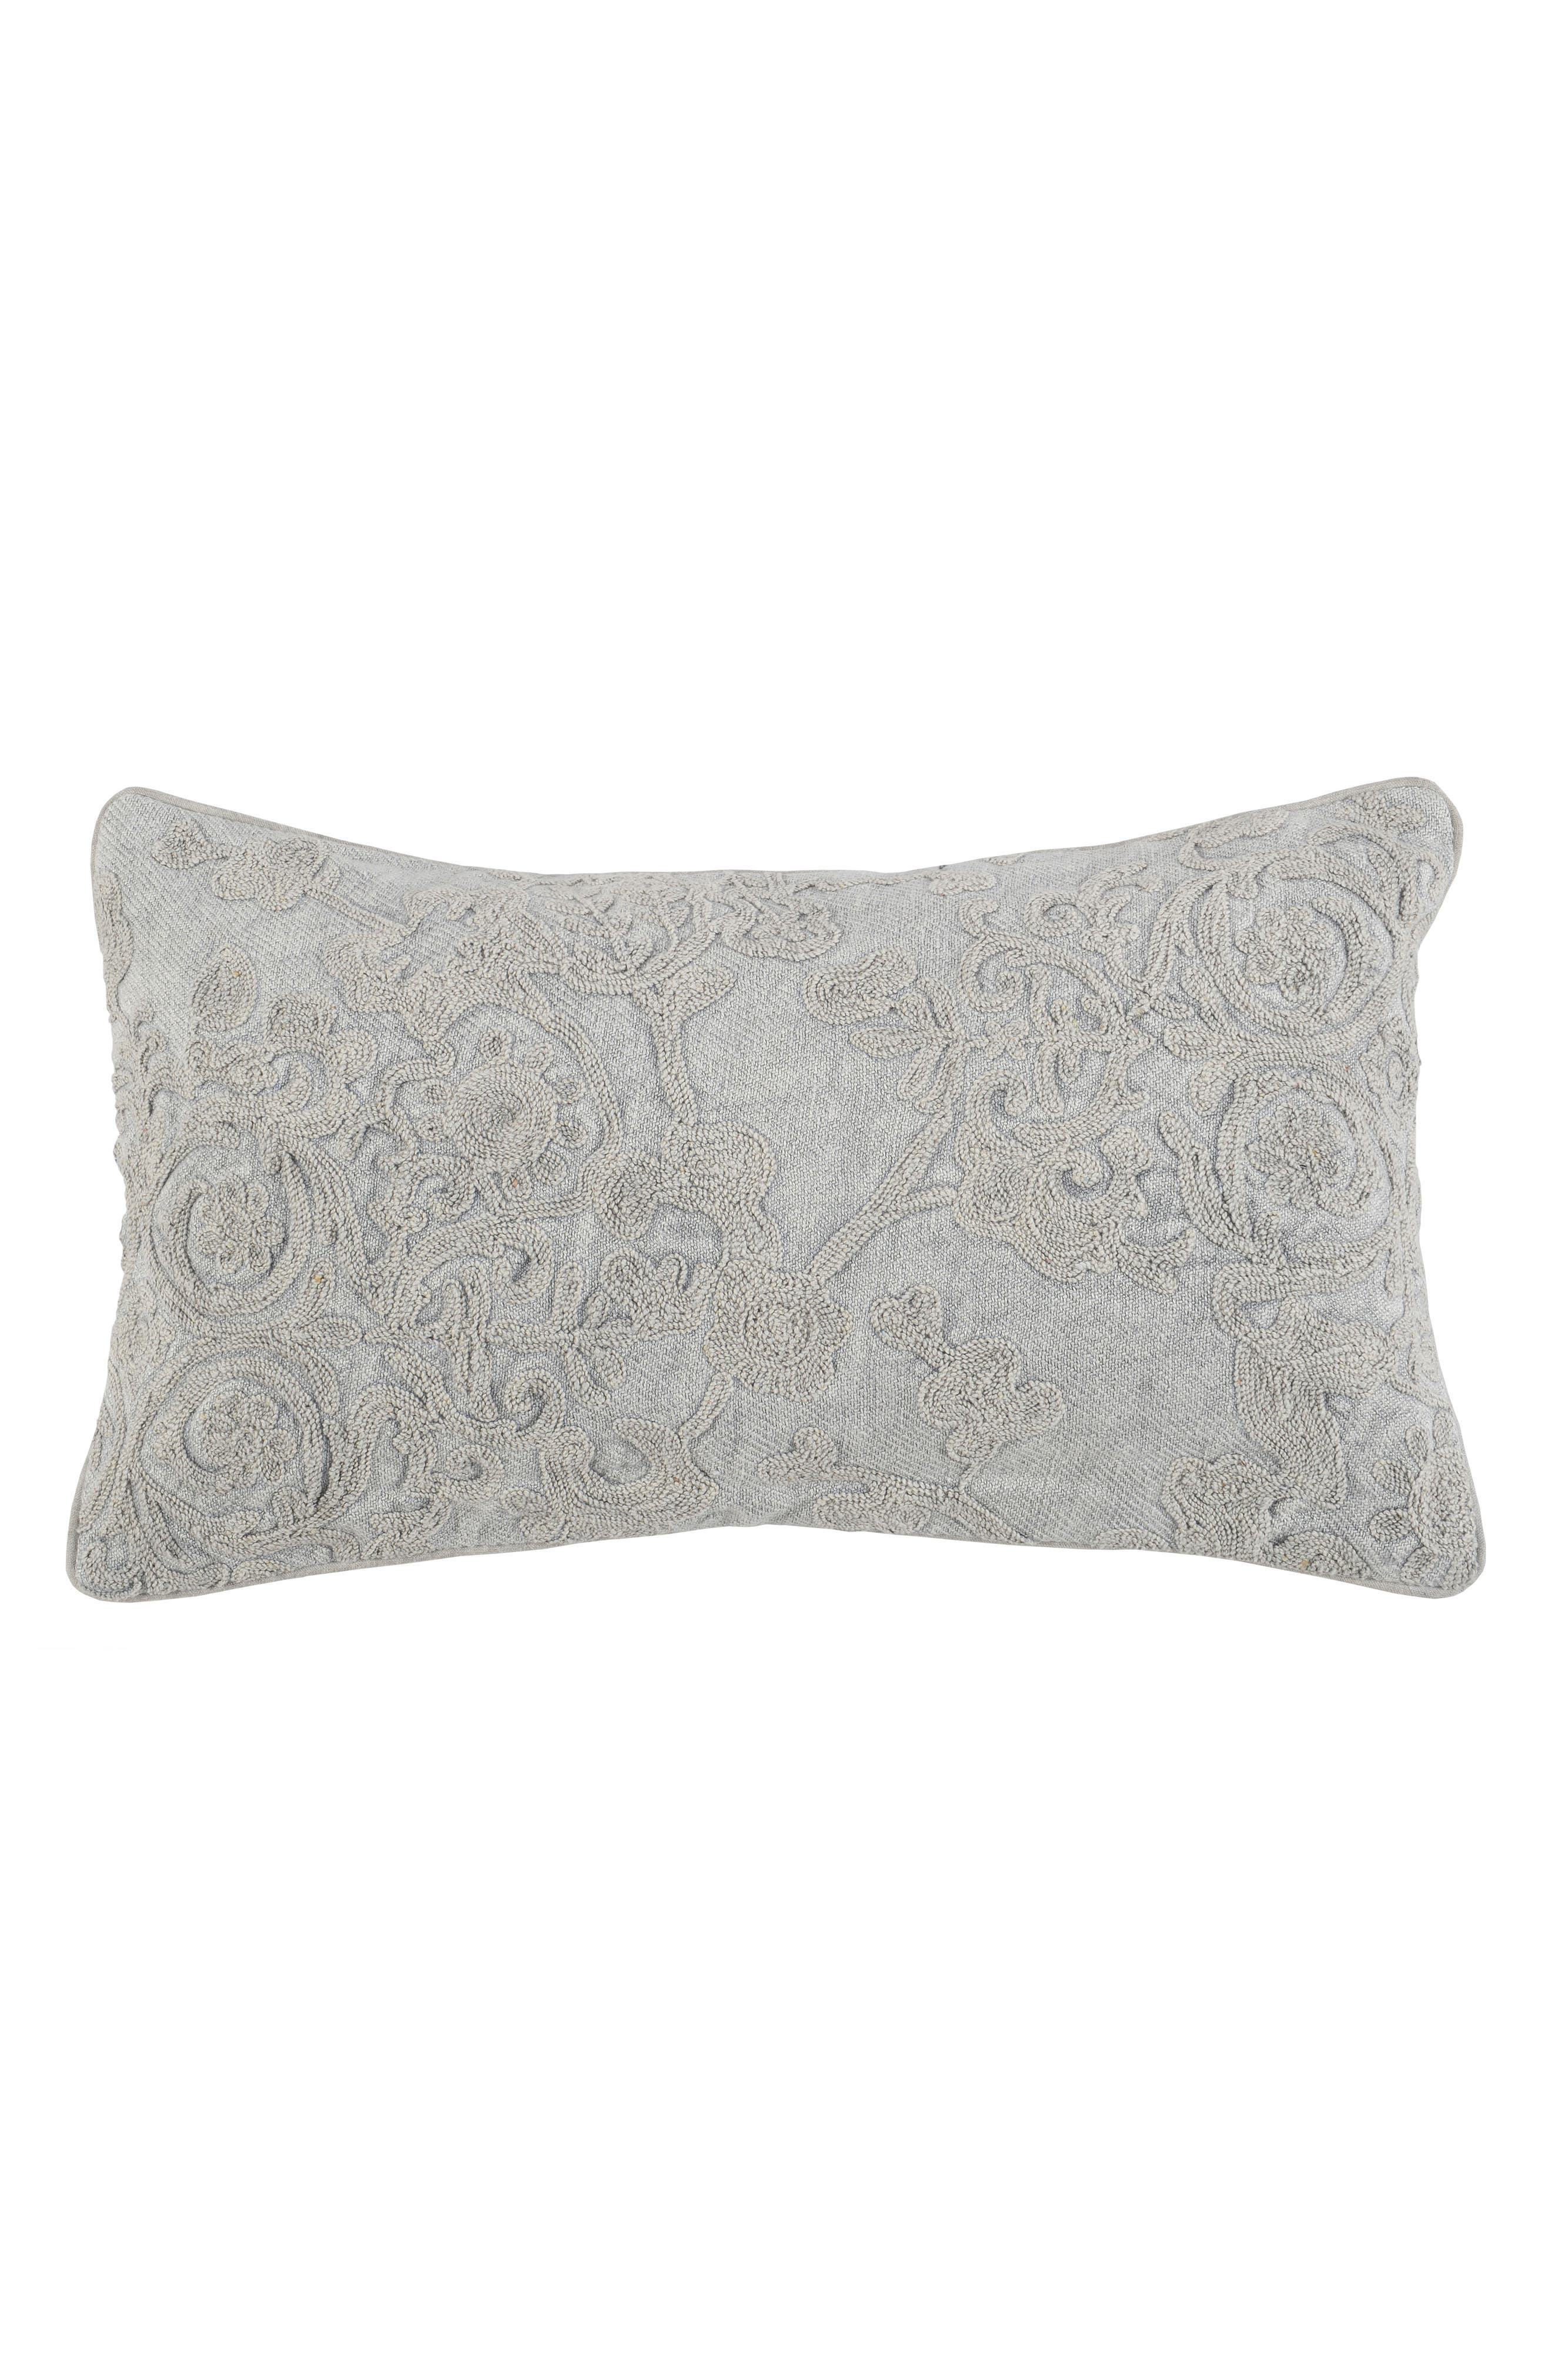 Solandra Embroidered Accent Pillow,                         Main,                         color, Gray